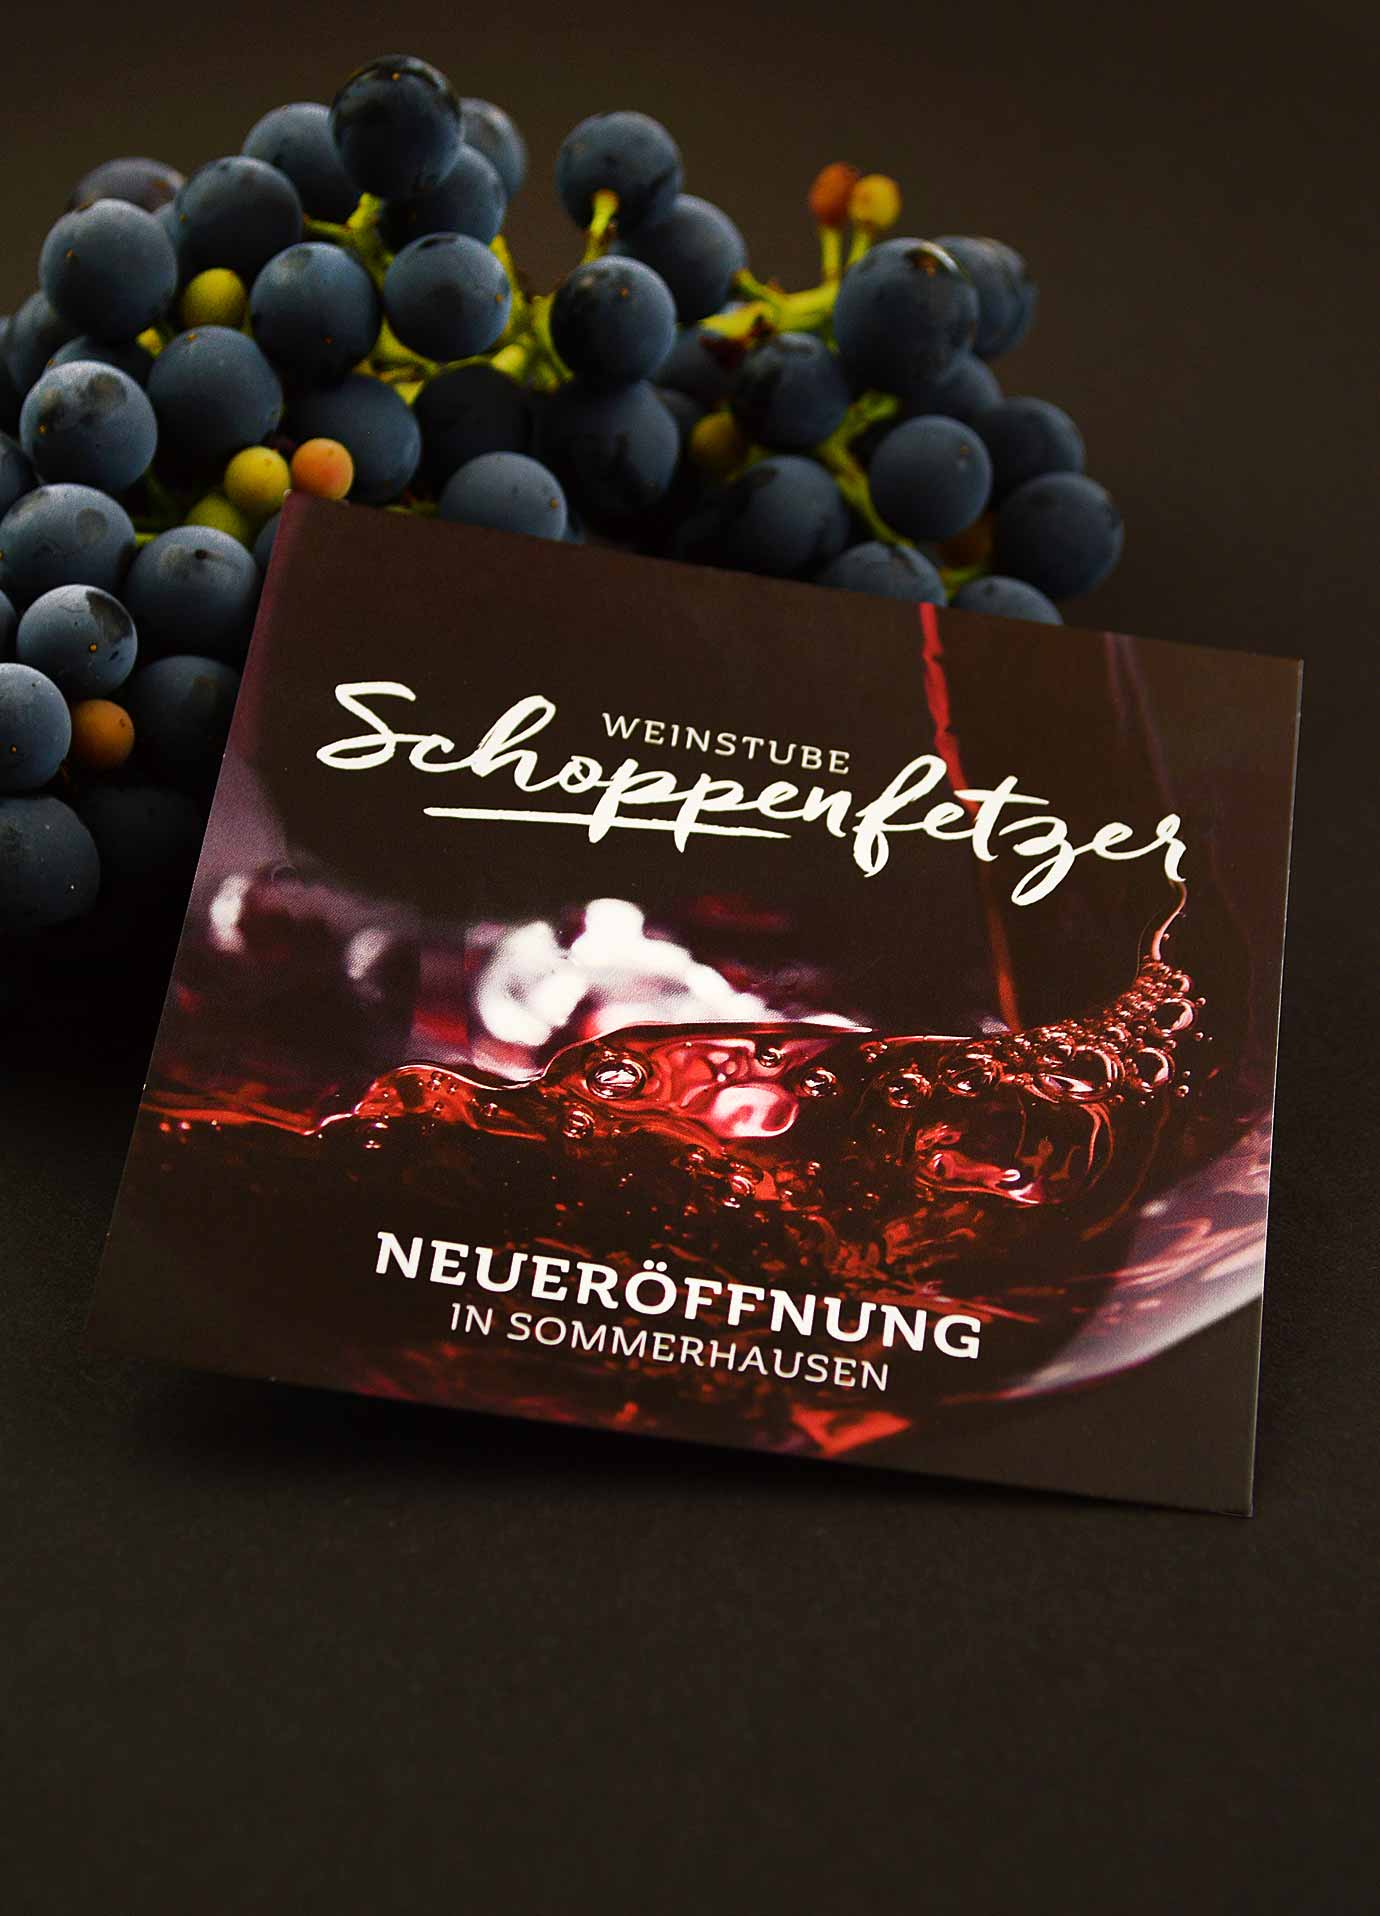 Weinstube Schoppenfetzer, Mini-Flyer